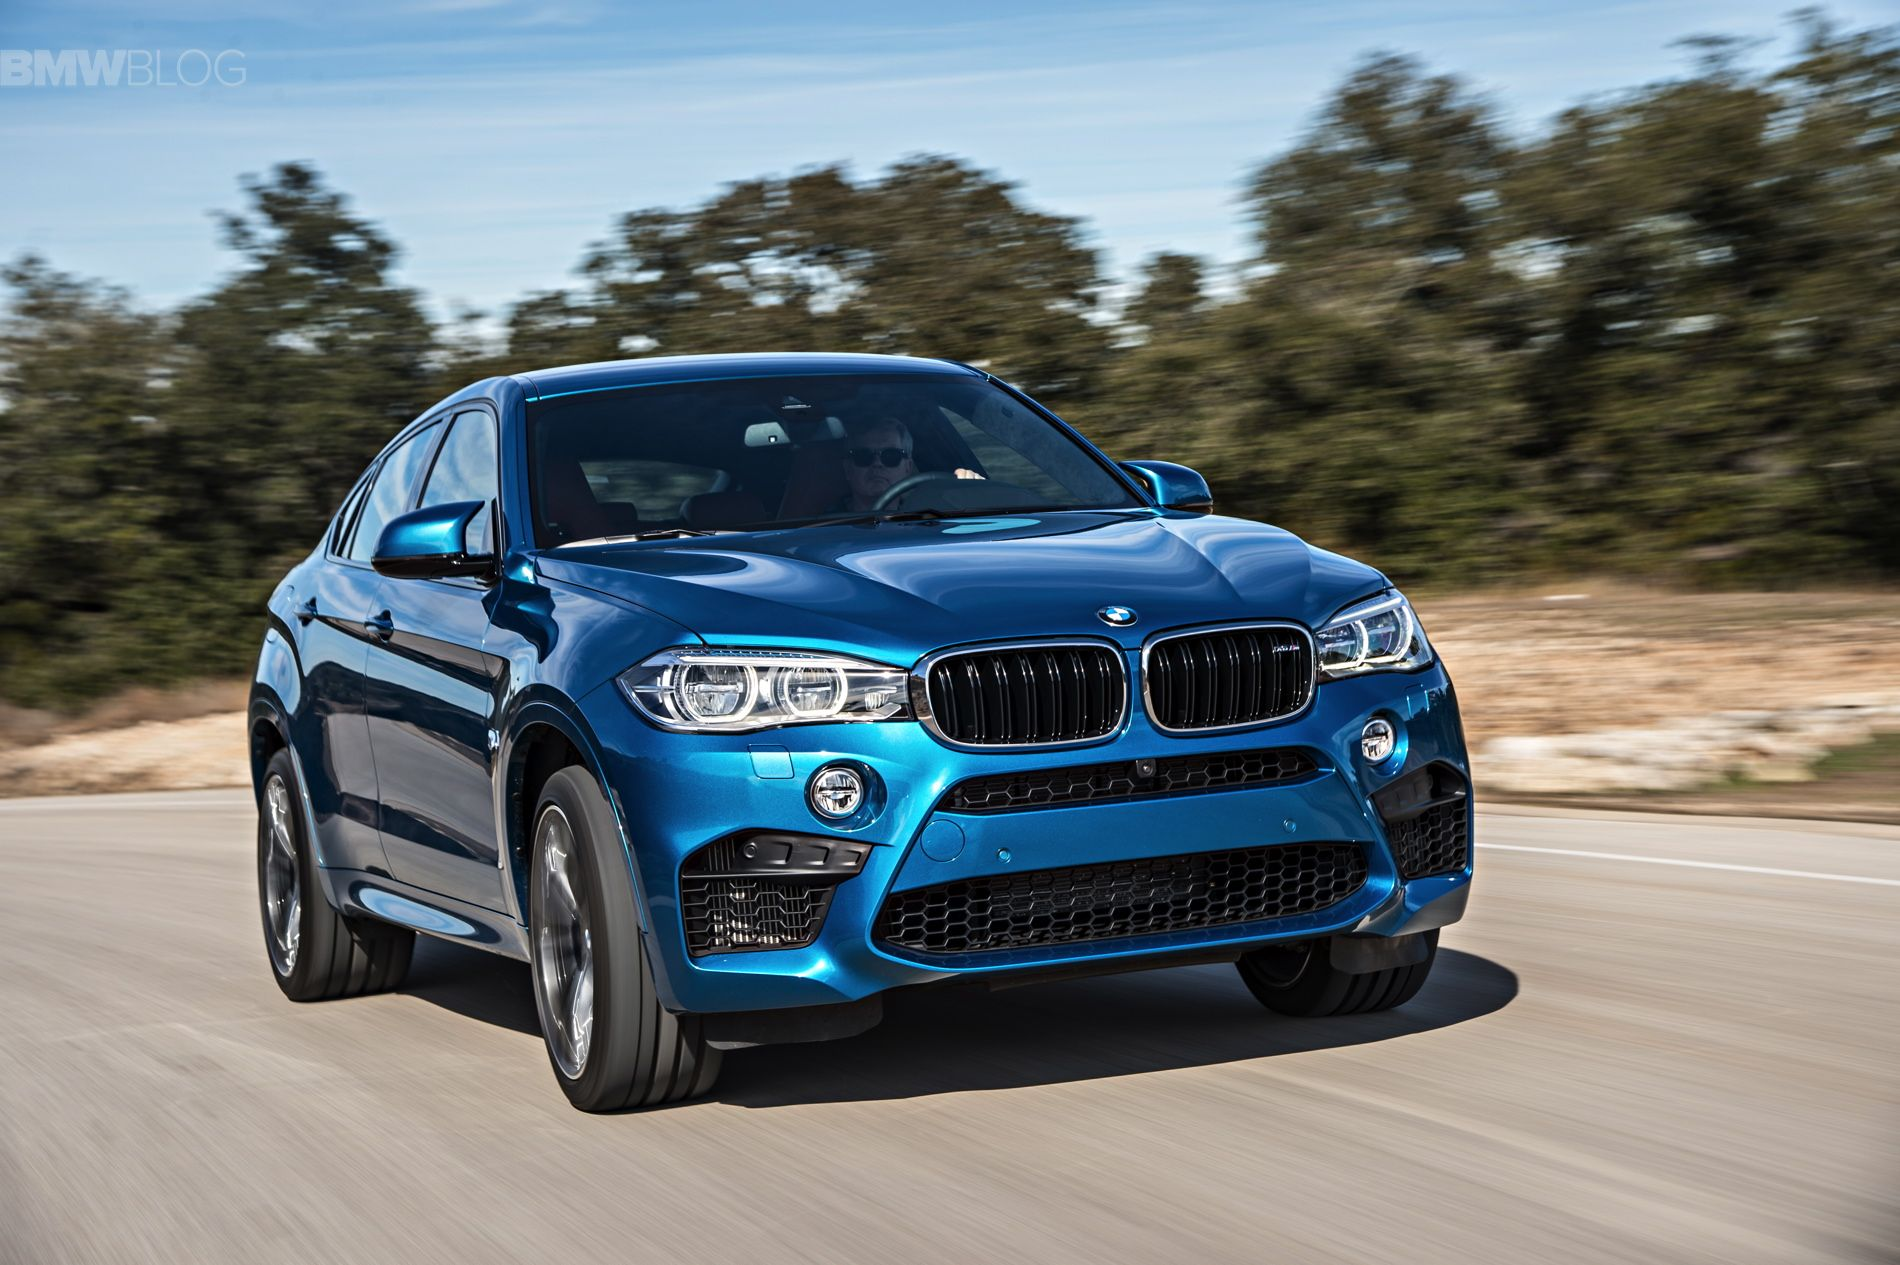 Justin bell drives the new bmw x6 m http www bmwblog